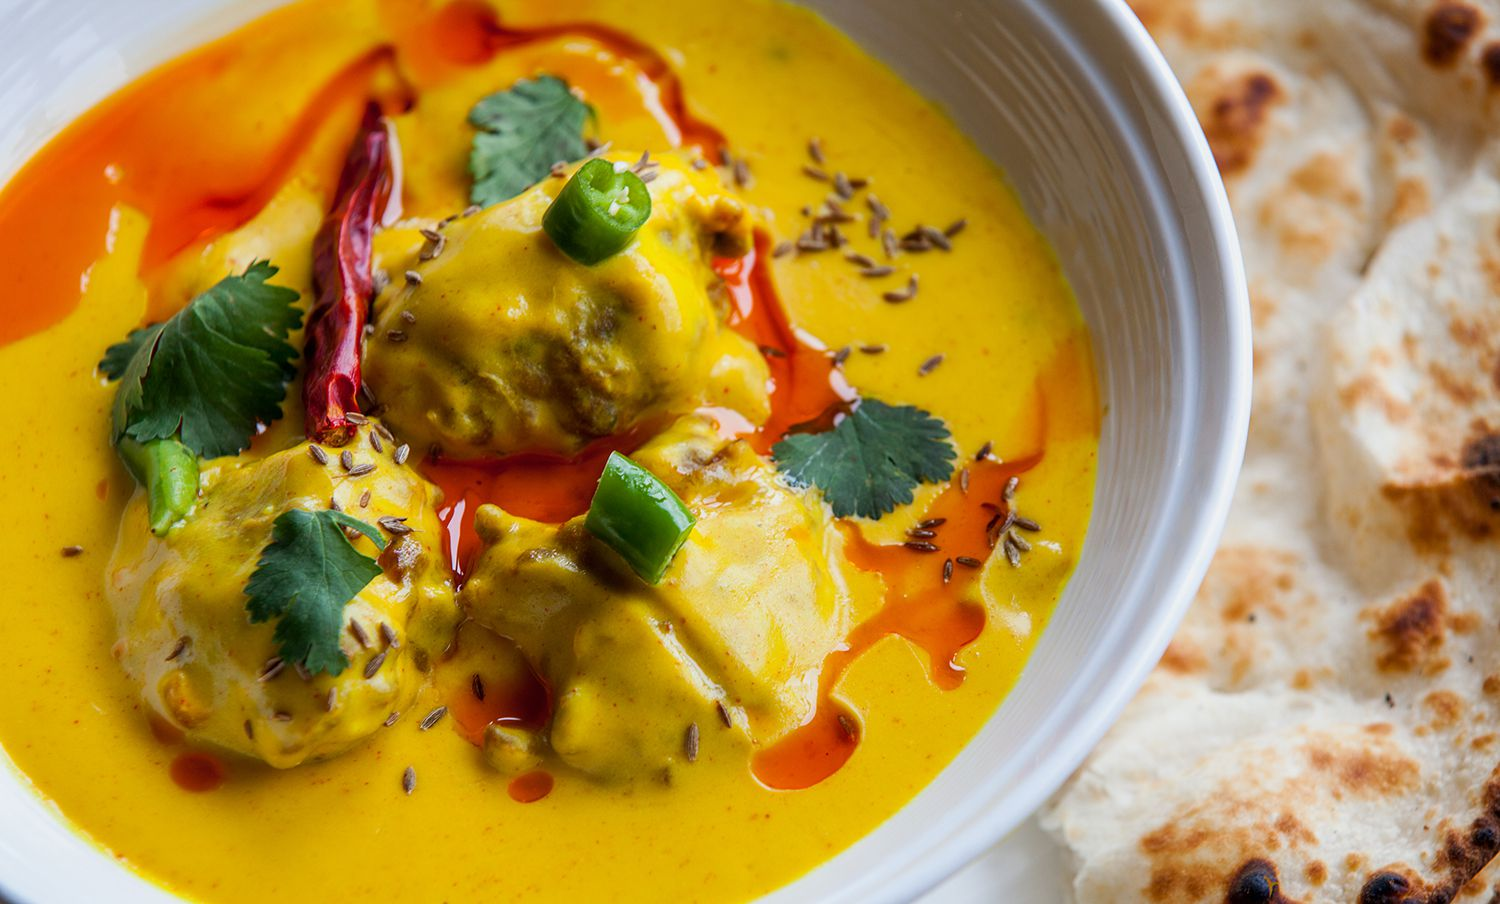 Curry Recipes So Authentic You'll Think You're in India